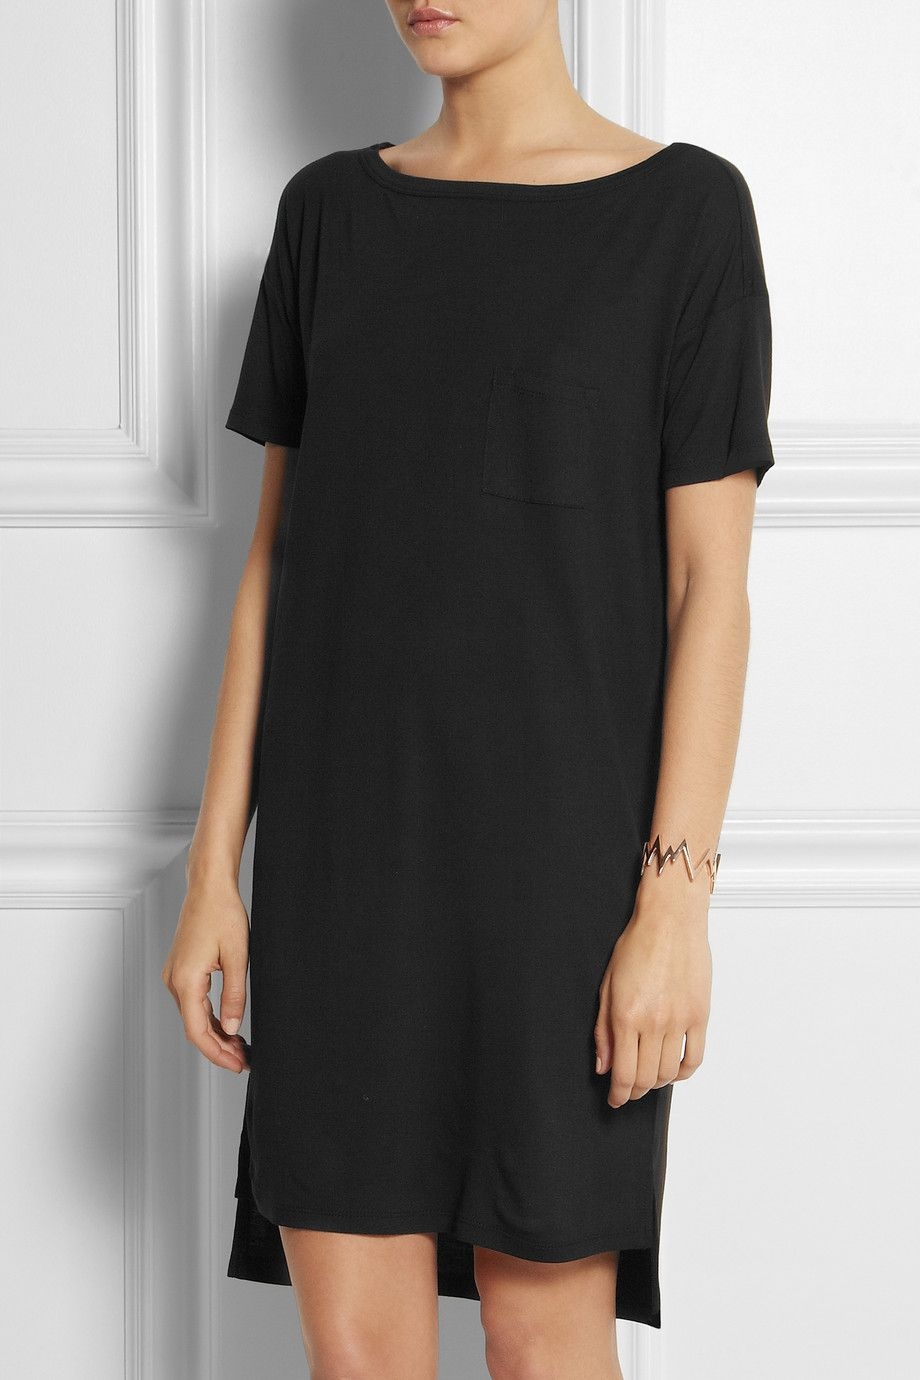 T By Alexander Wang Classic Jersey T Shirt Dress Net A Porter